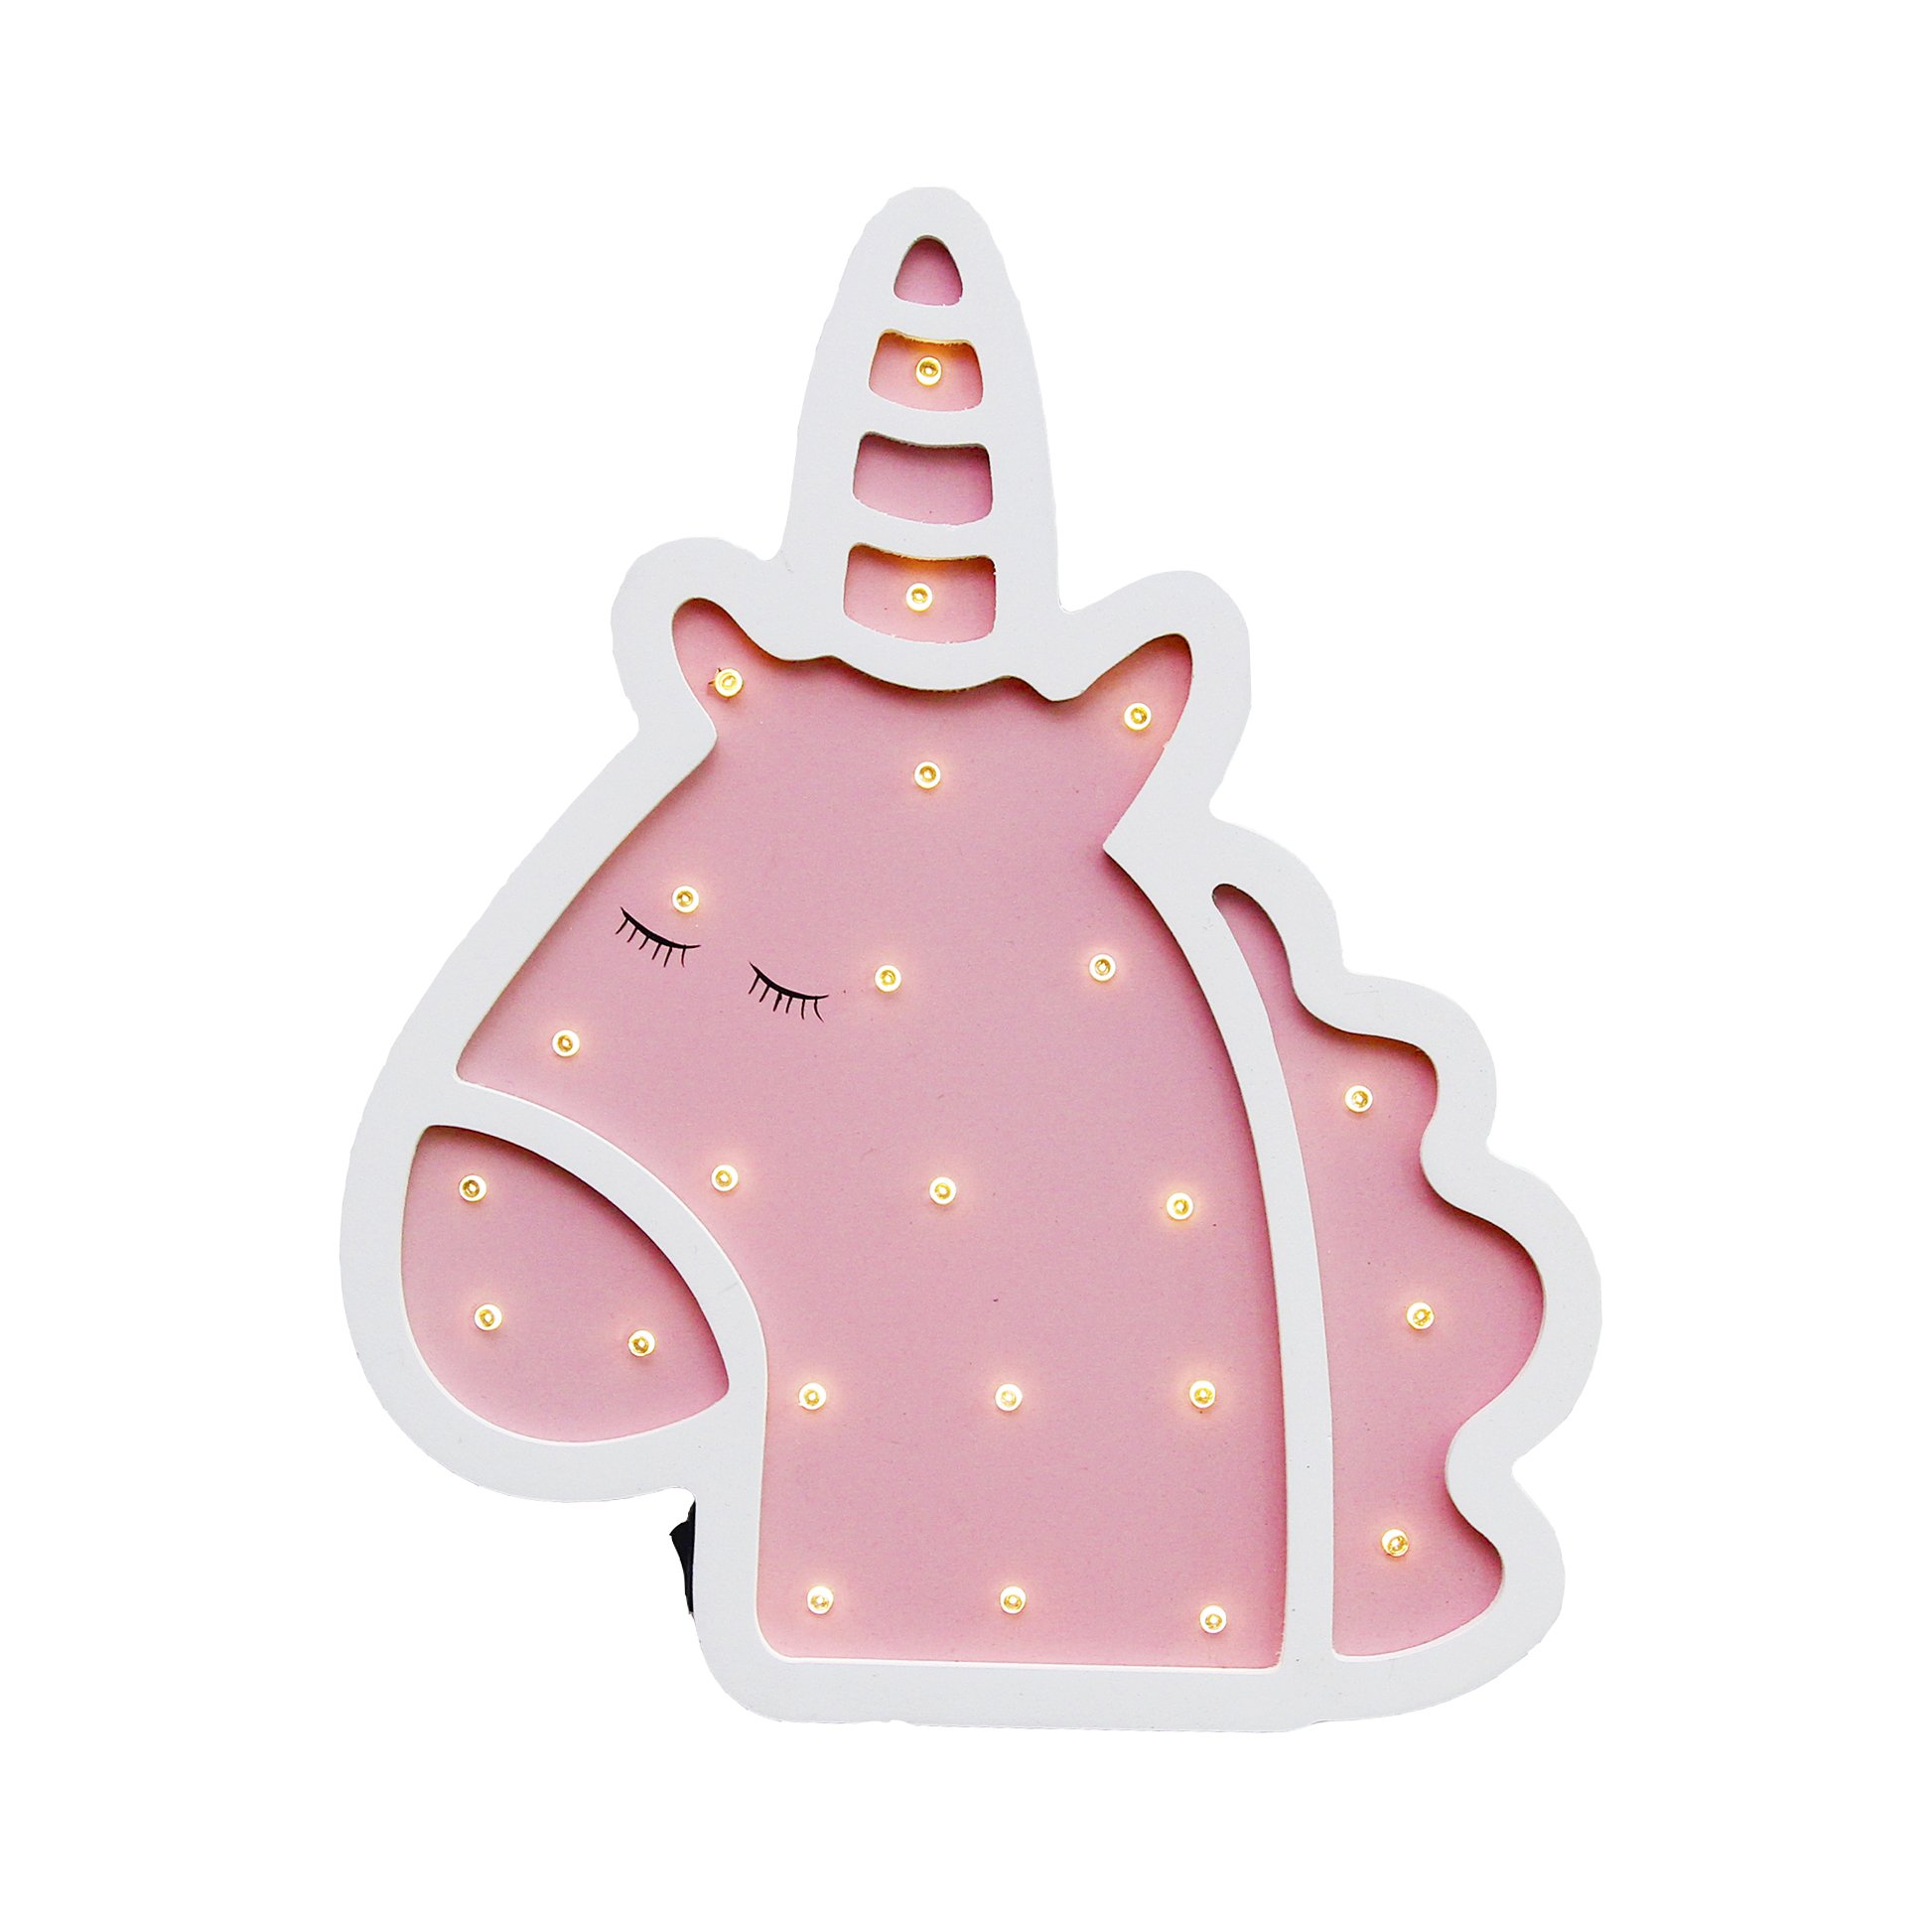 Unicorn Light Unicorn Party Supplies Battery Operated Unicorn LED Night Light Unicorn Lamp Unicorn Table Decorations for Wall Decoration,Kids' Room,Living Room,Bedroom,Christmas (Pink and white)